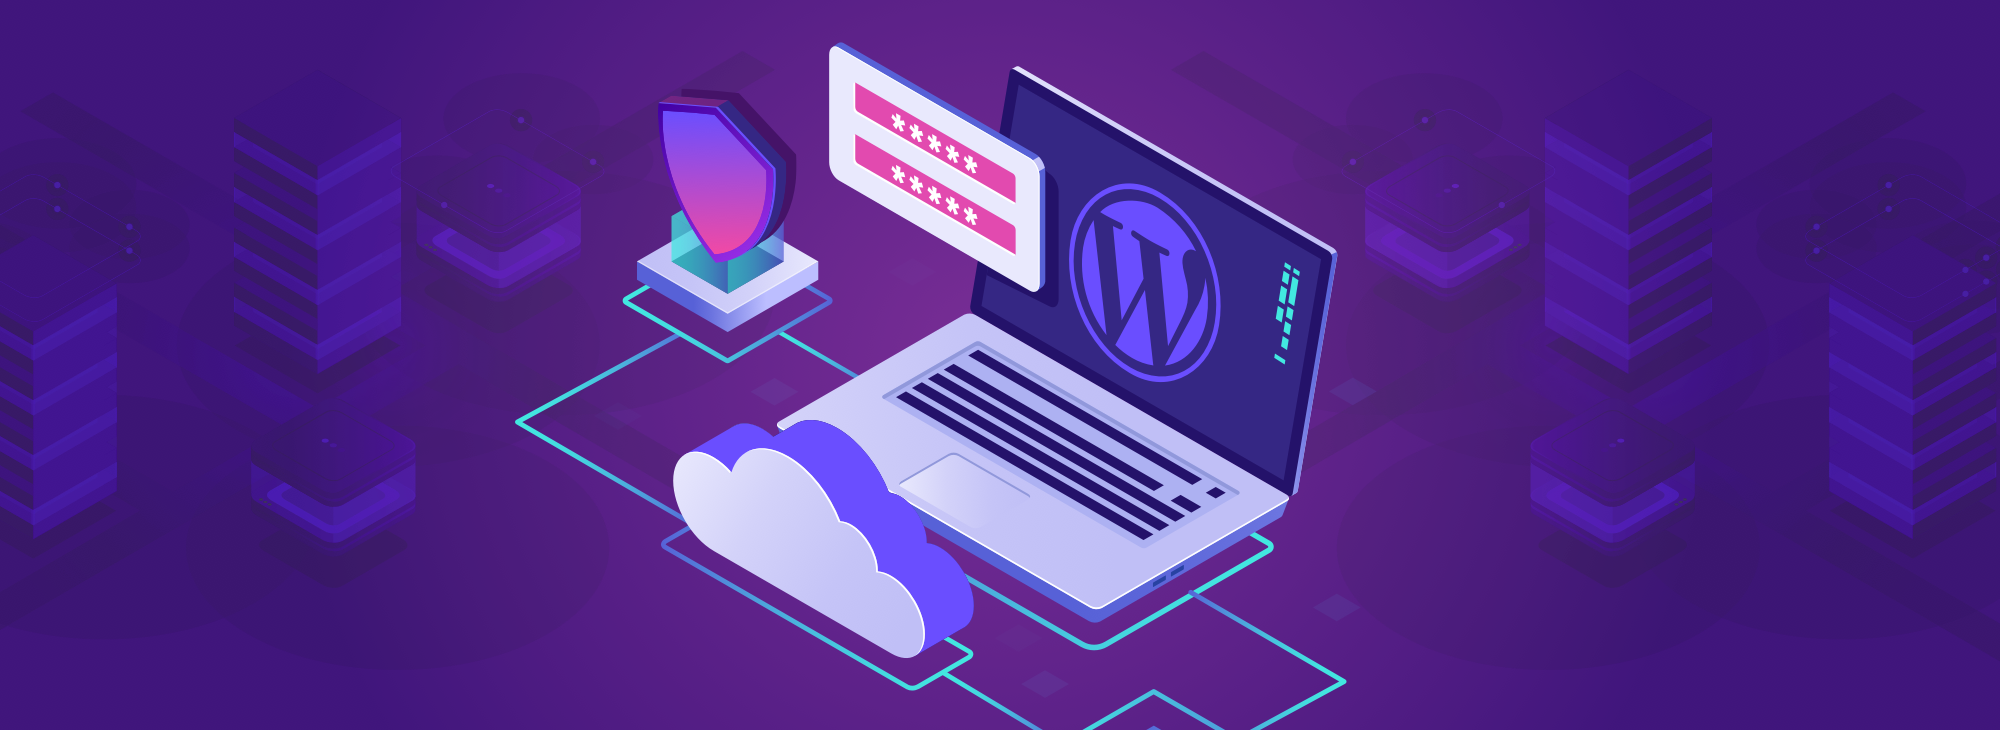 WordPress Security: Important Considerations and Recommended for Ecommerce Websites